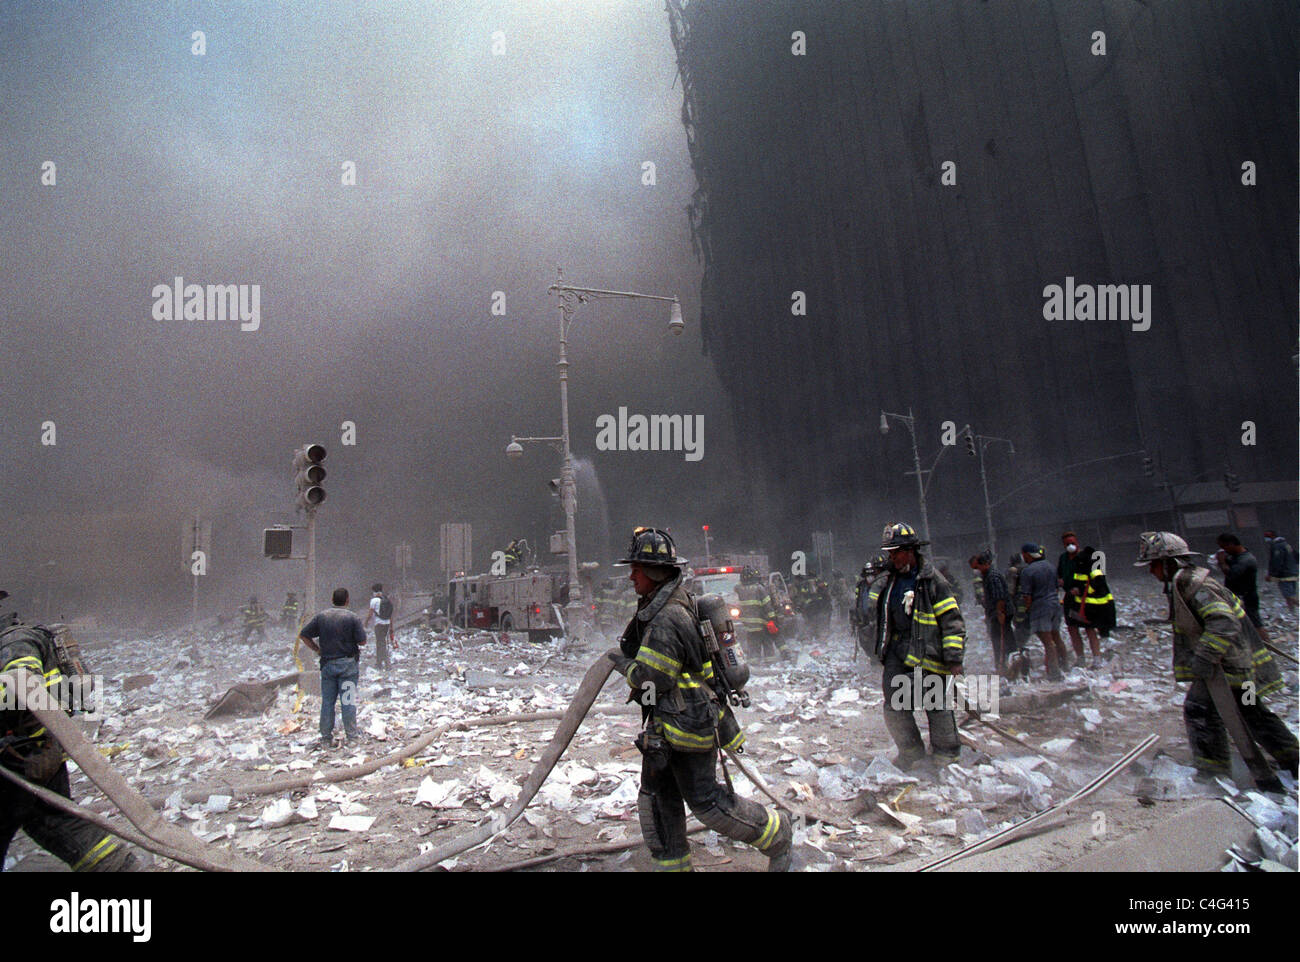 World Trade Center fire/ terrorism September 11, 2001. Liberty and West Streets. (© Richard B. Levine) - Stock Image